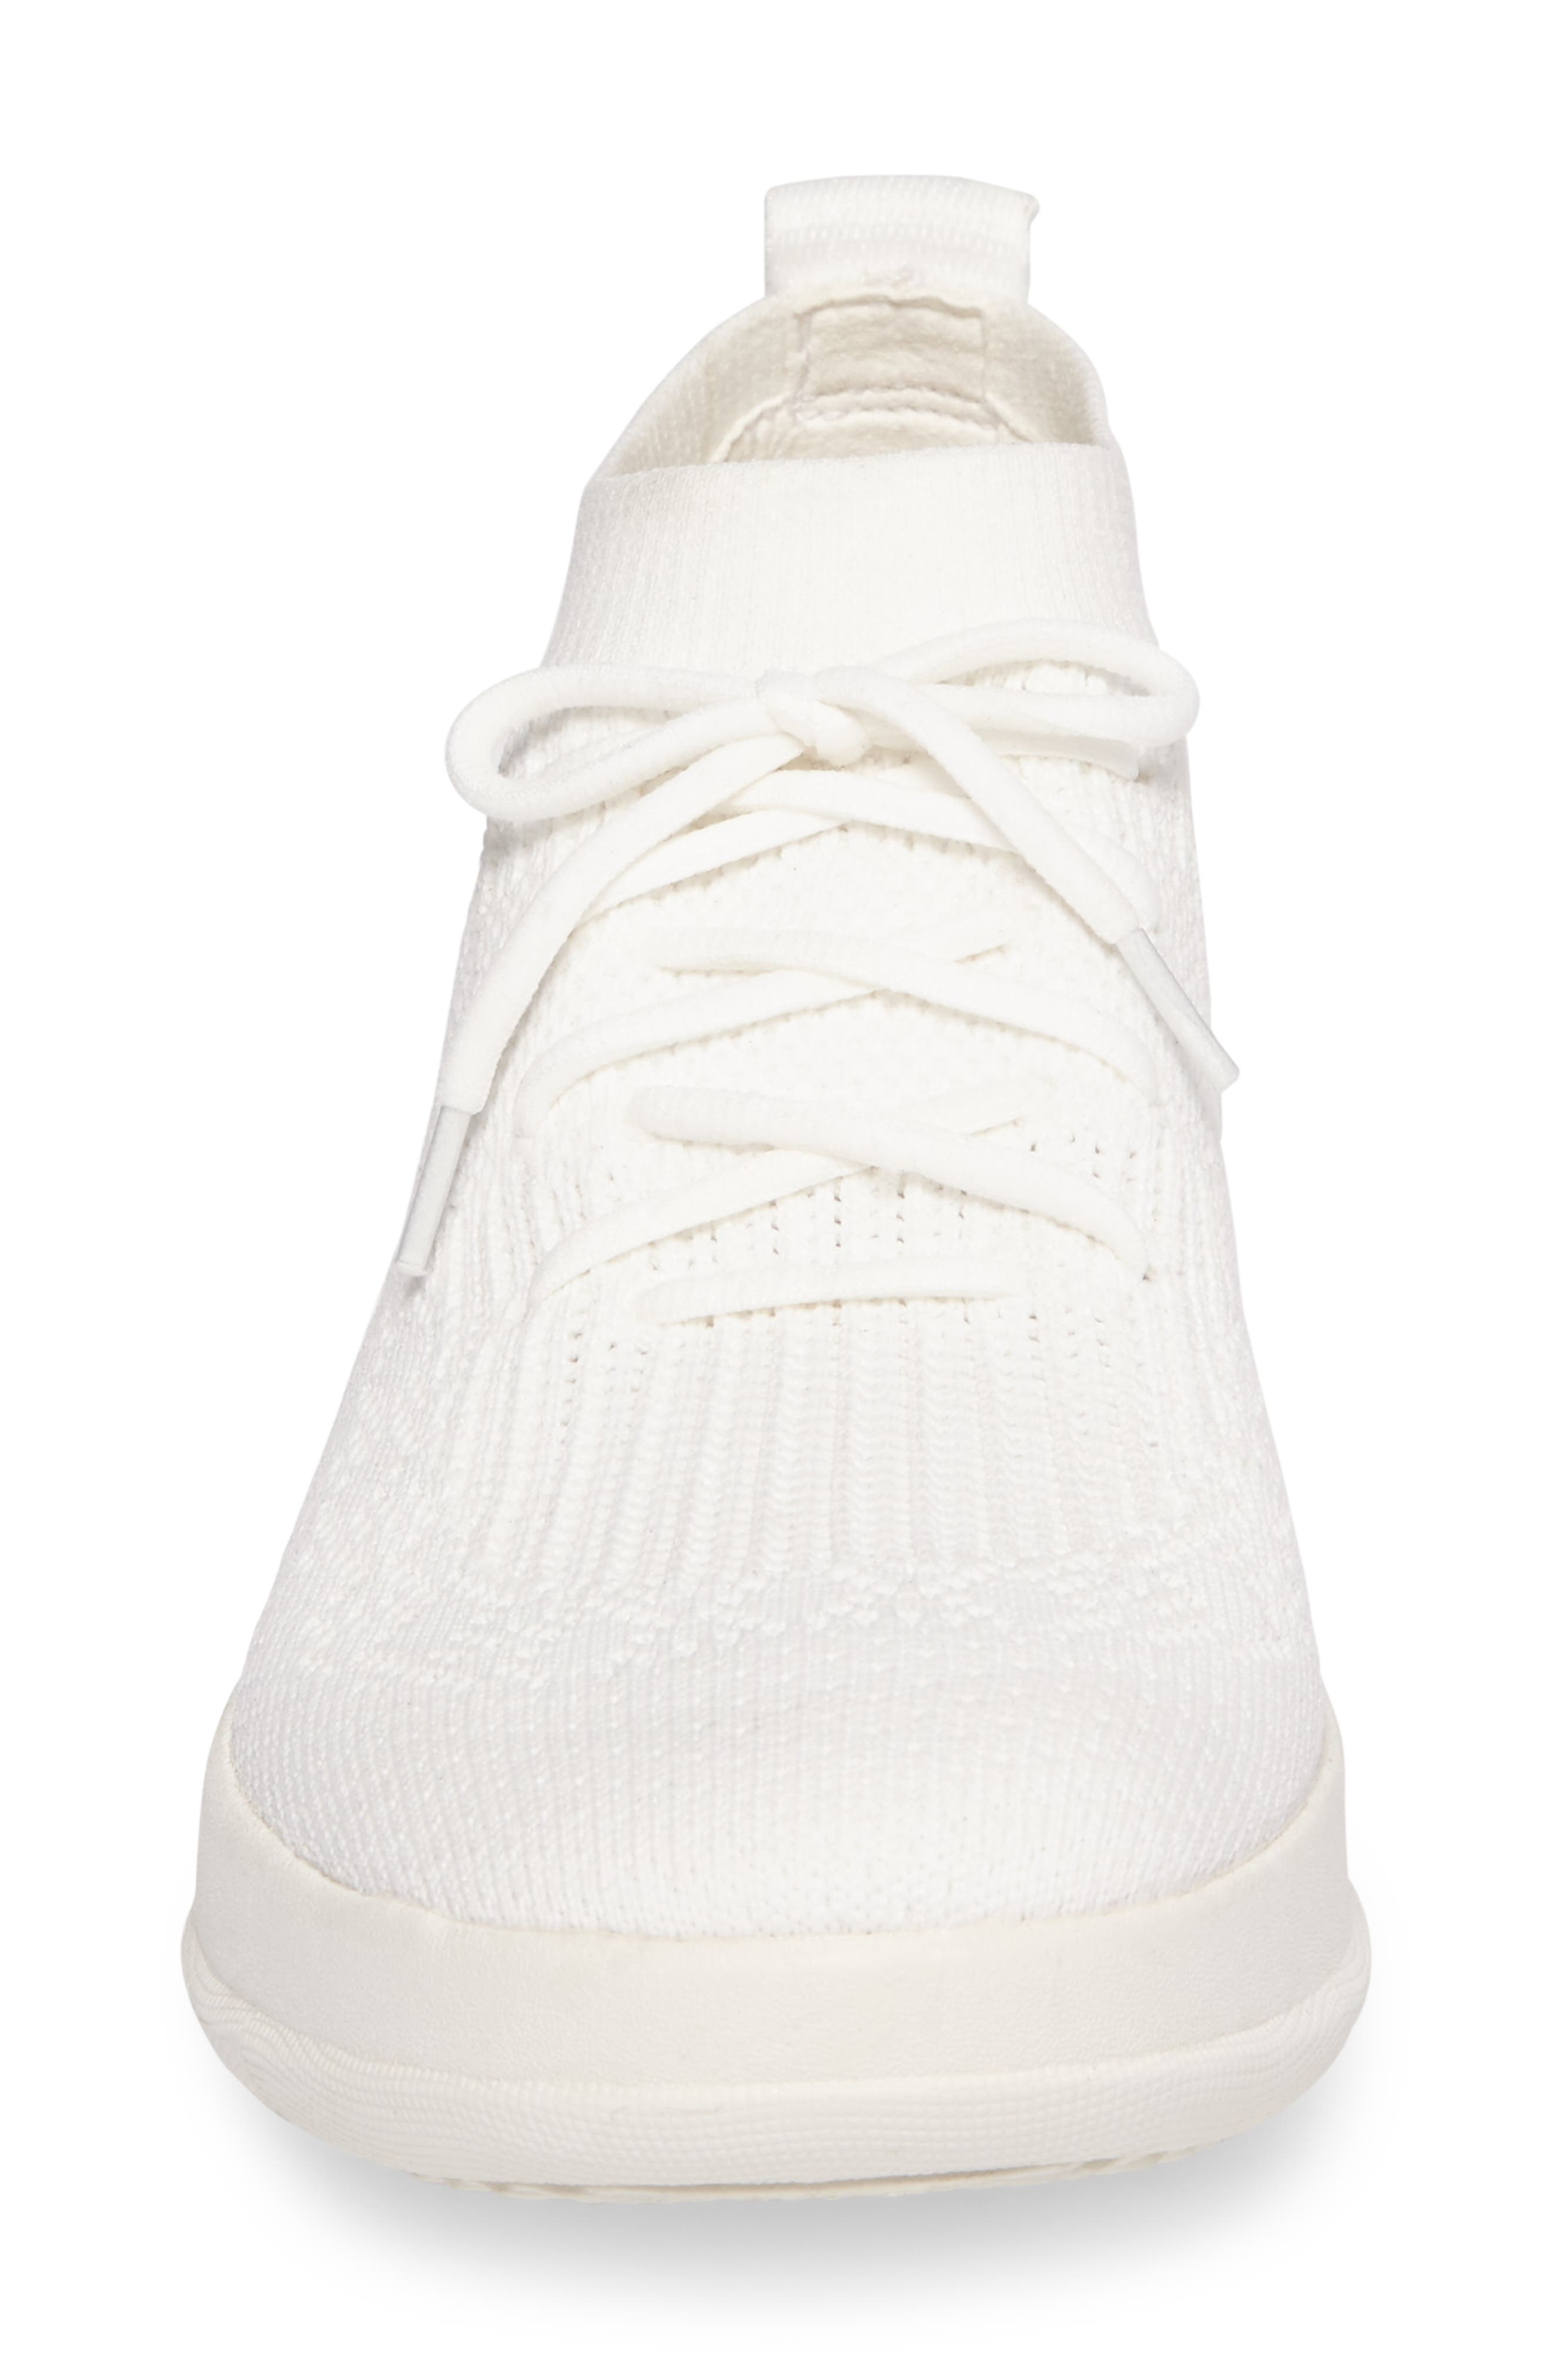 Überknit High Top Sneaker,                             Alternate thumbnail 4, color,                             108